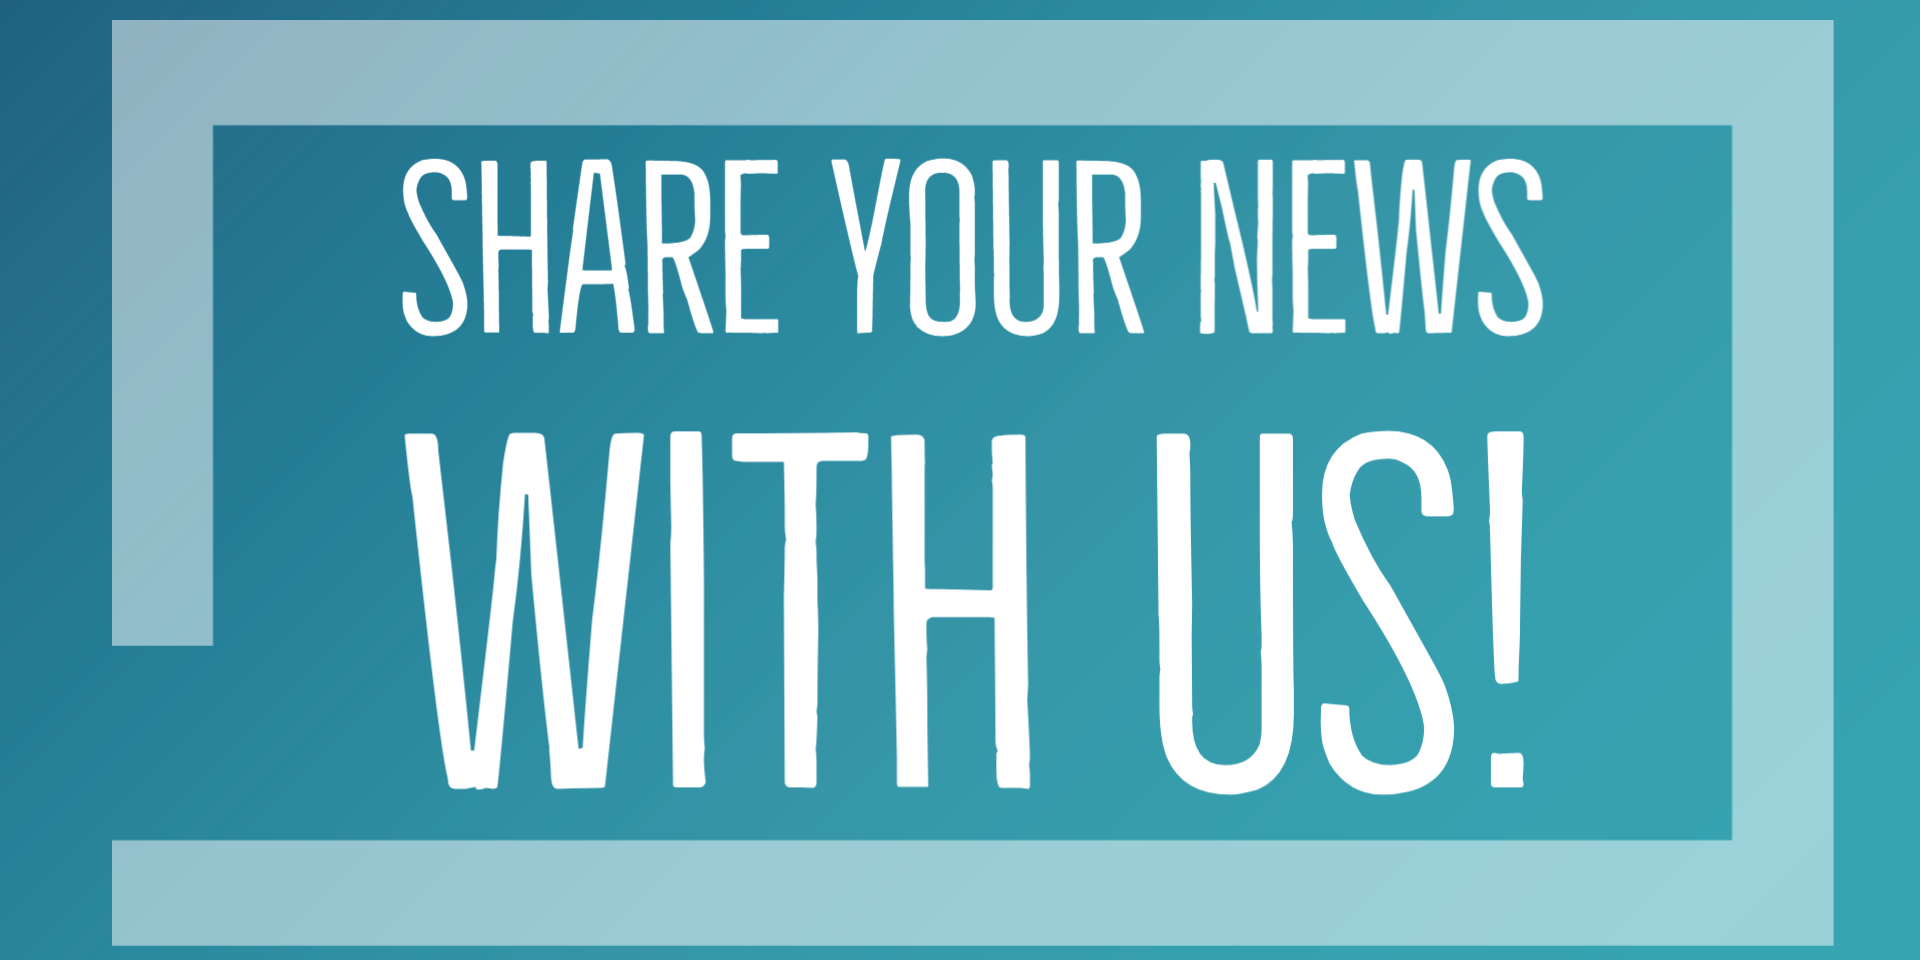 Share your News with us!